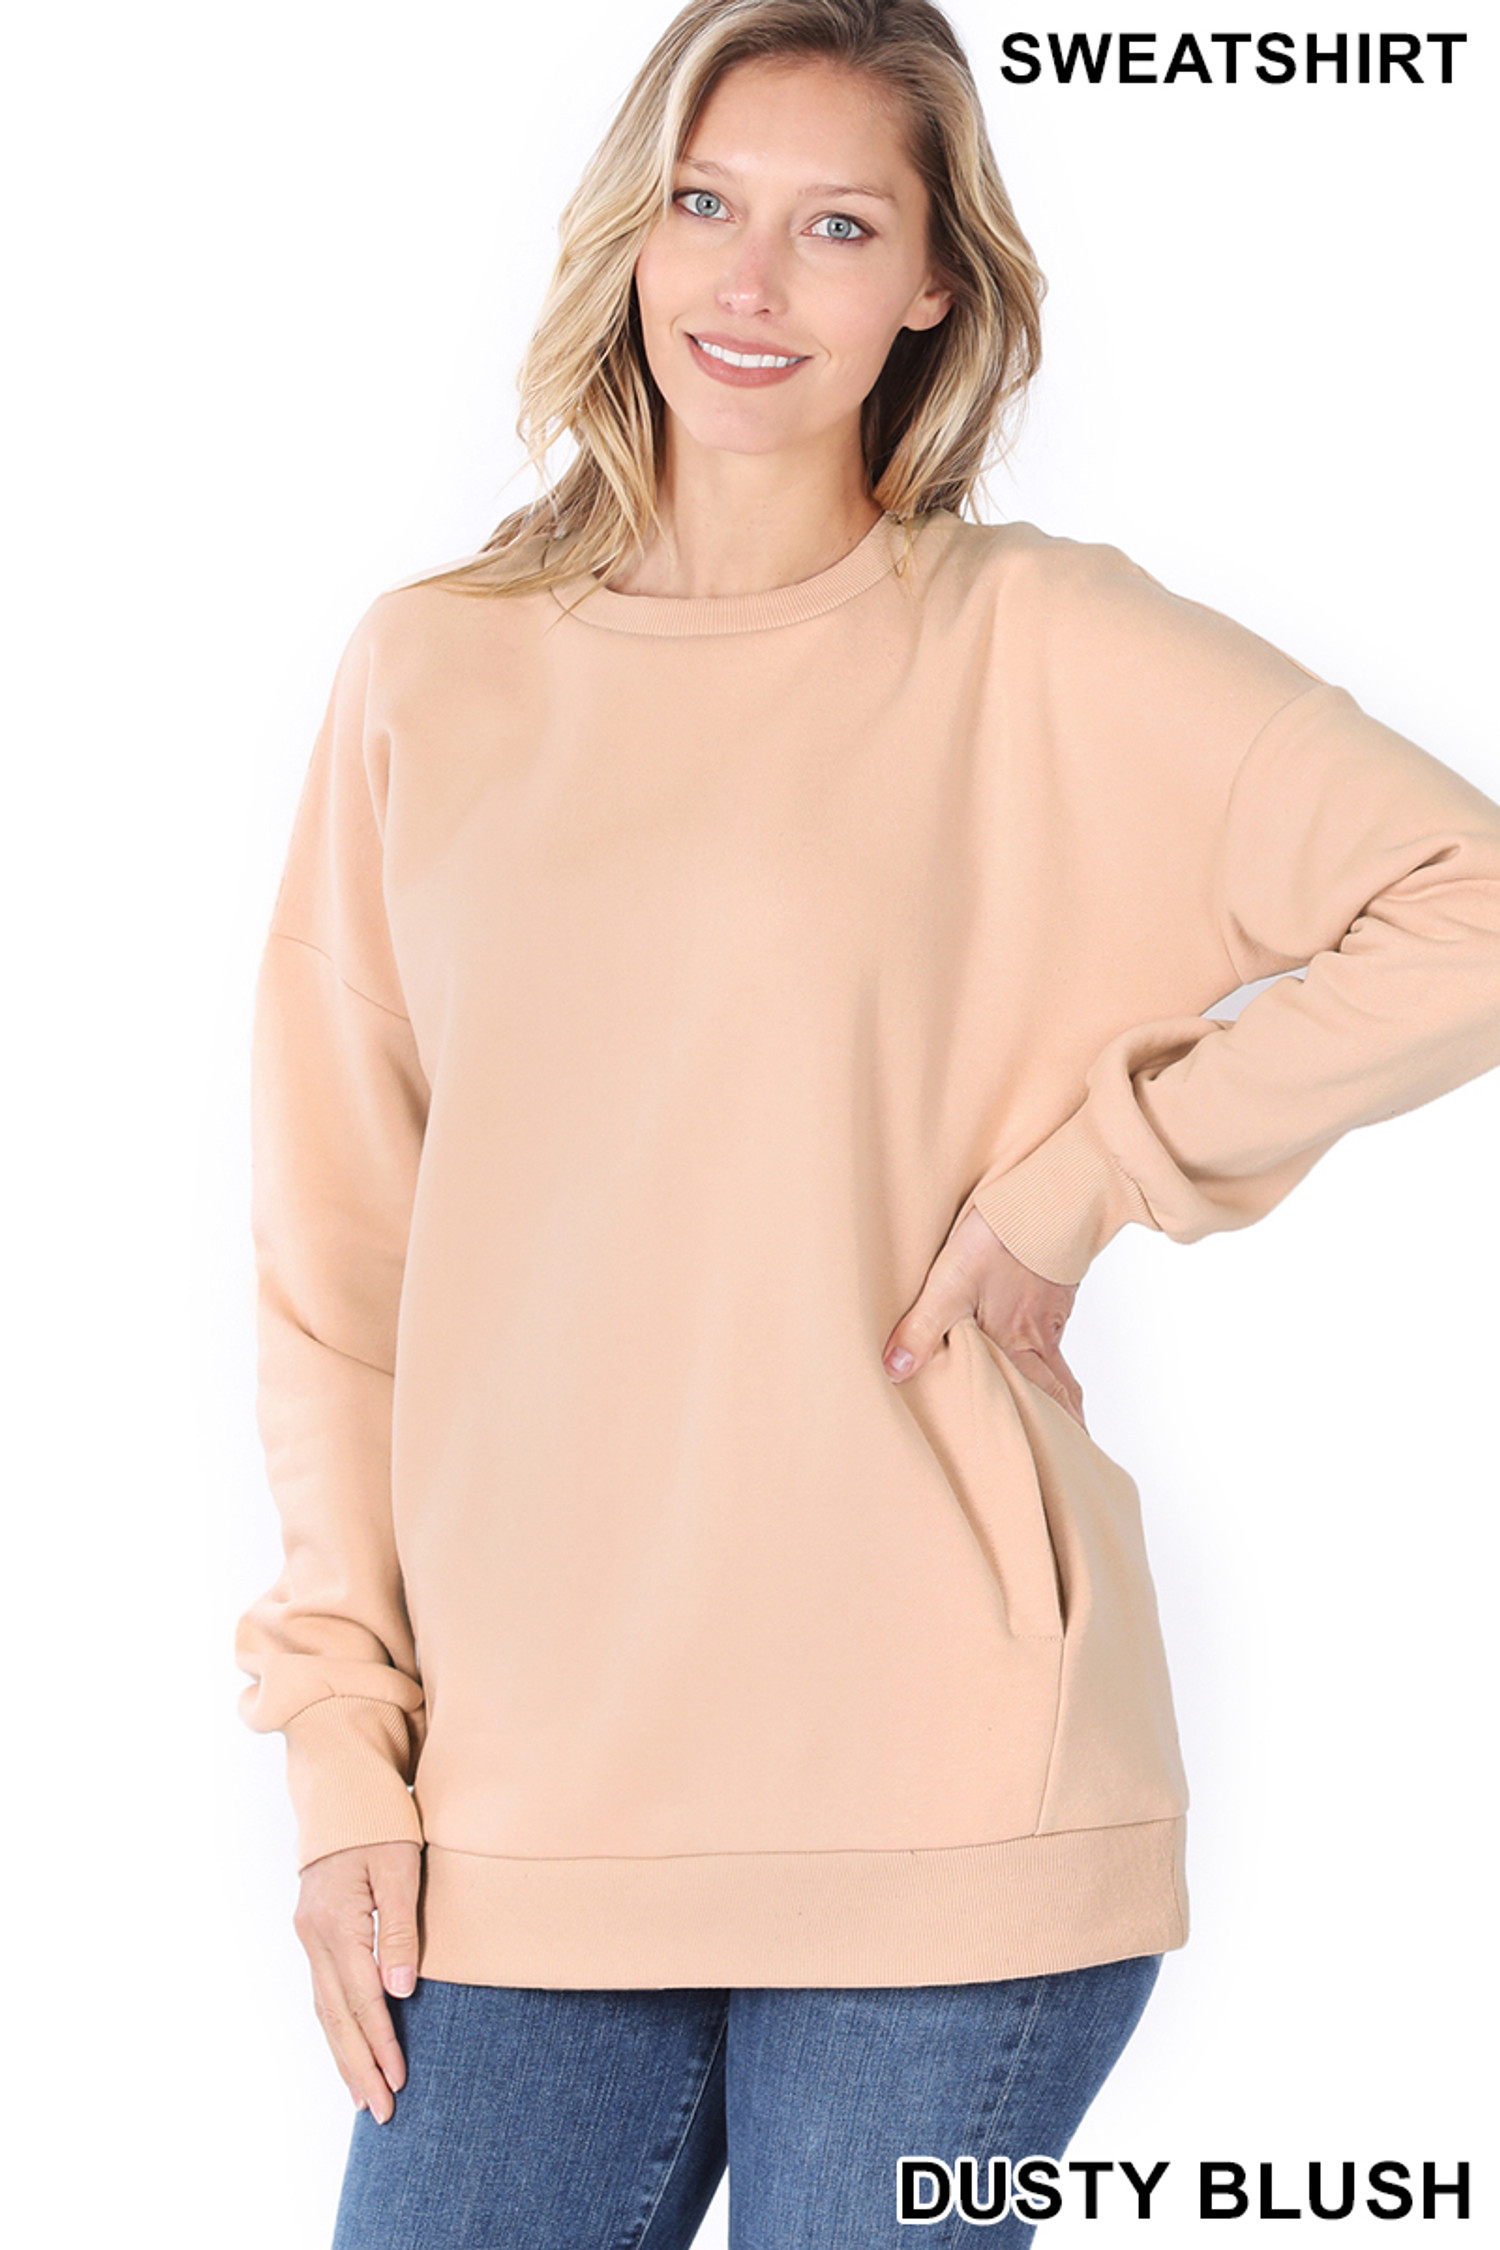 Front image of Dusty Blush Round Crew Neck Sweatshirt with Side Pockets